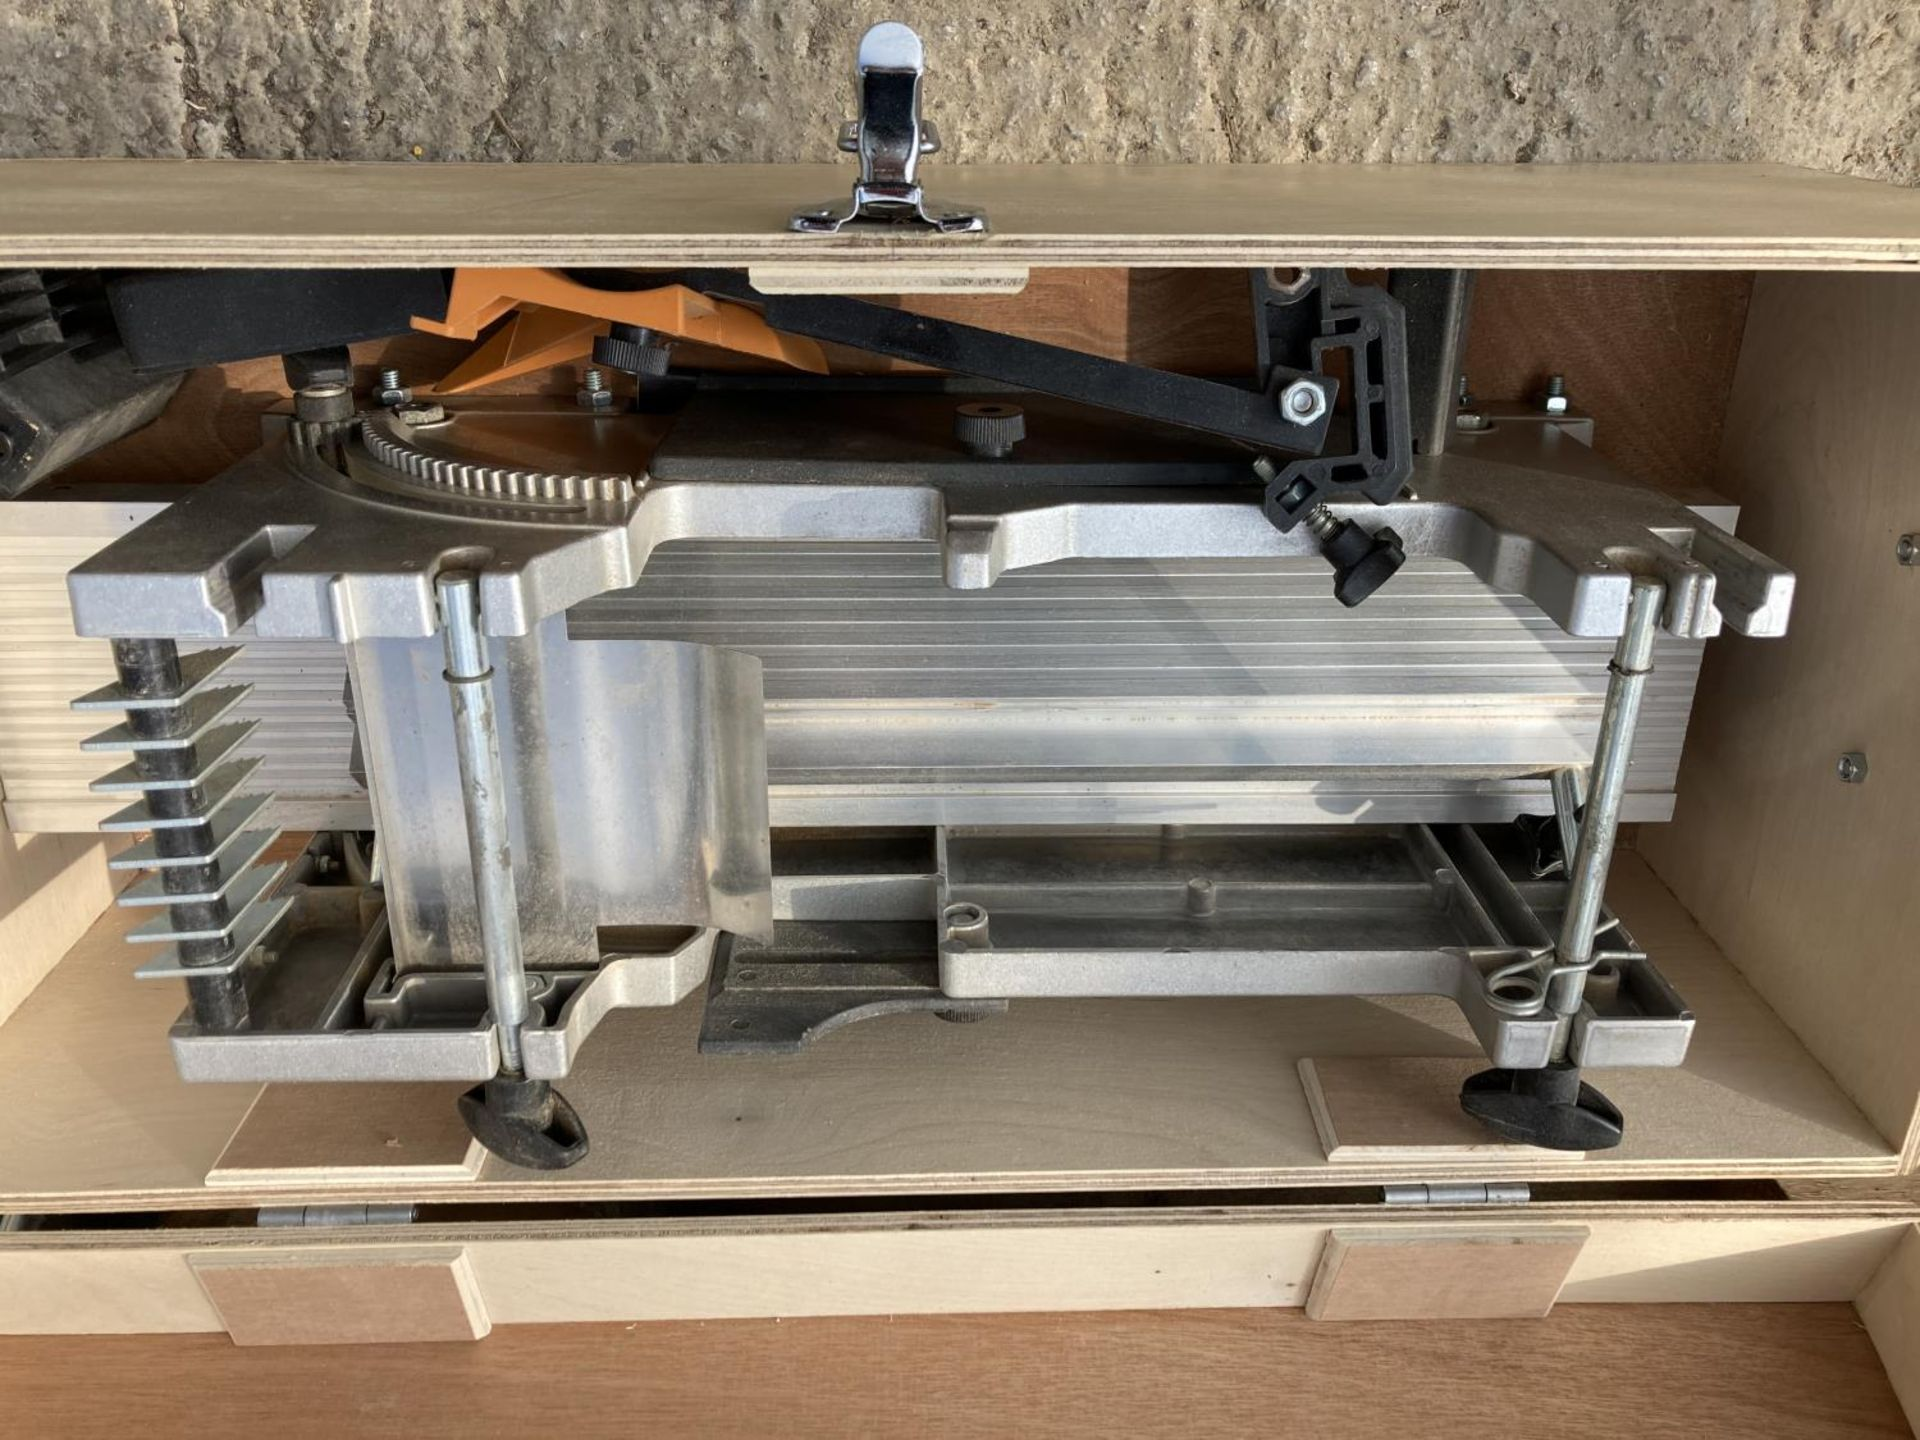 TWO ITEMS TO INCLUDE A ELU PLANER THICKNESSER AND A COMPOUND MILLING TABLE WITH BITS NO VAT - Image 2 of 3